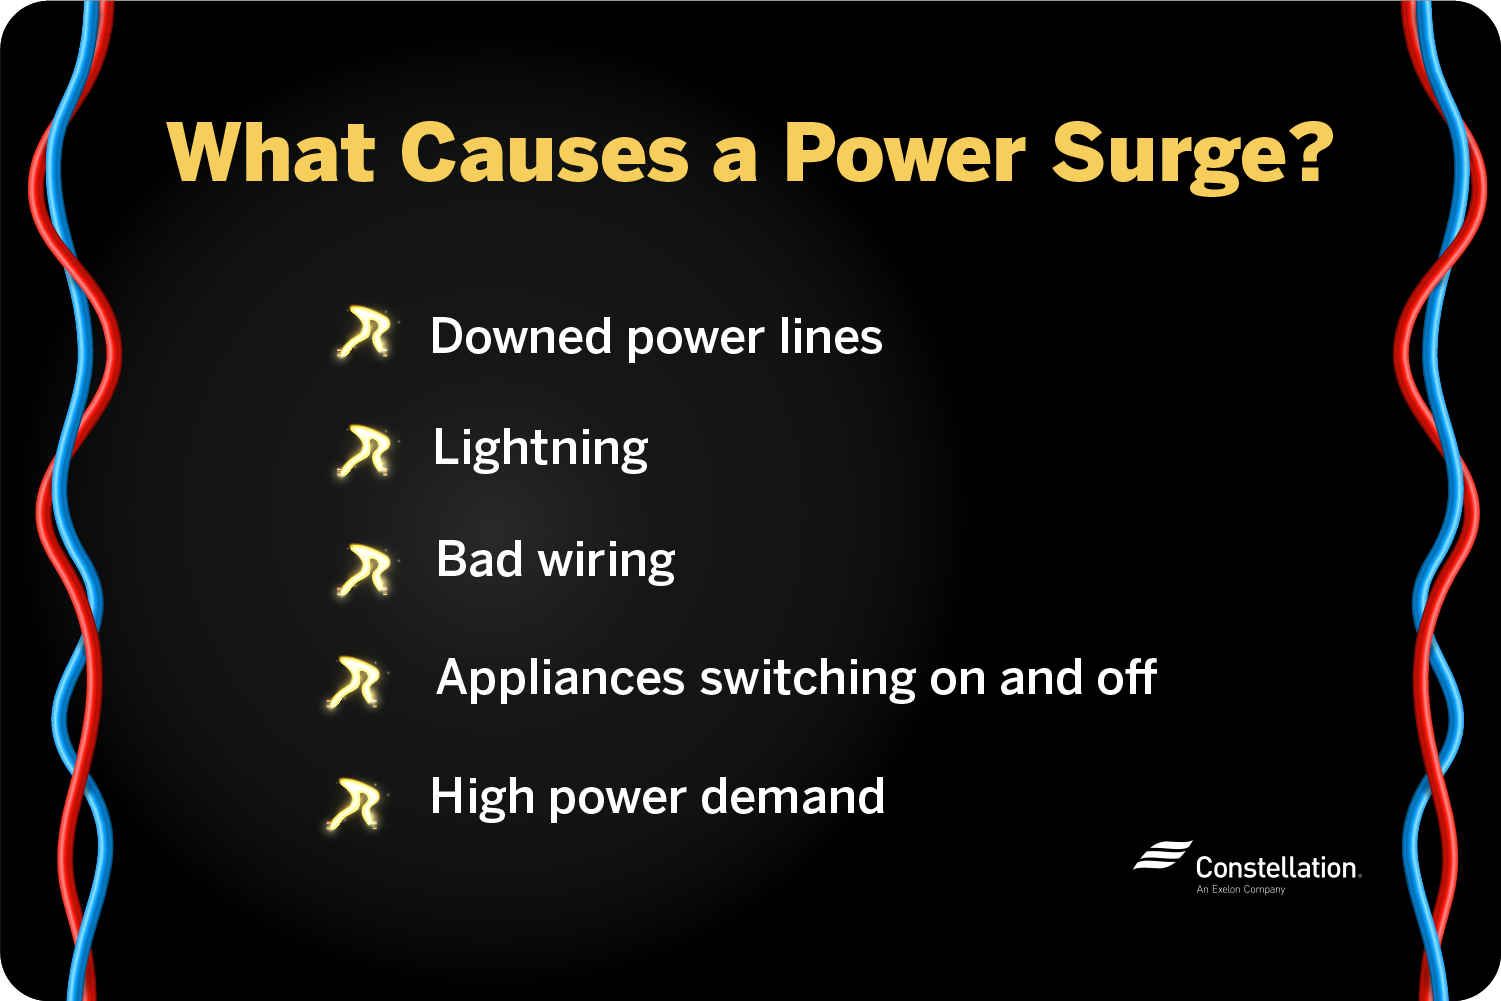 What causes a power surge